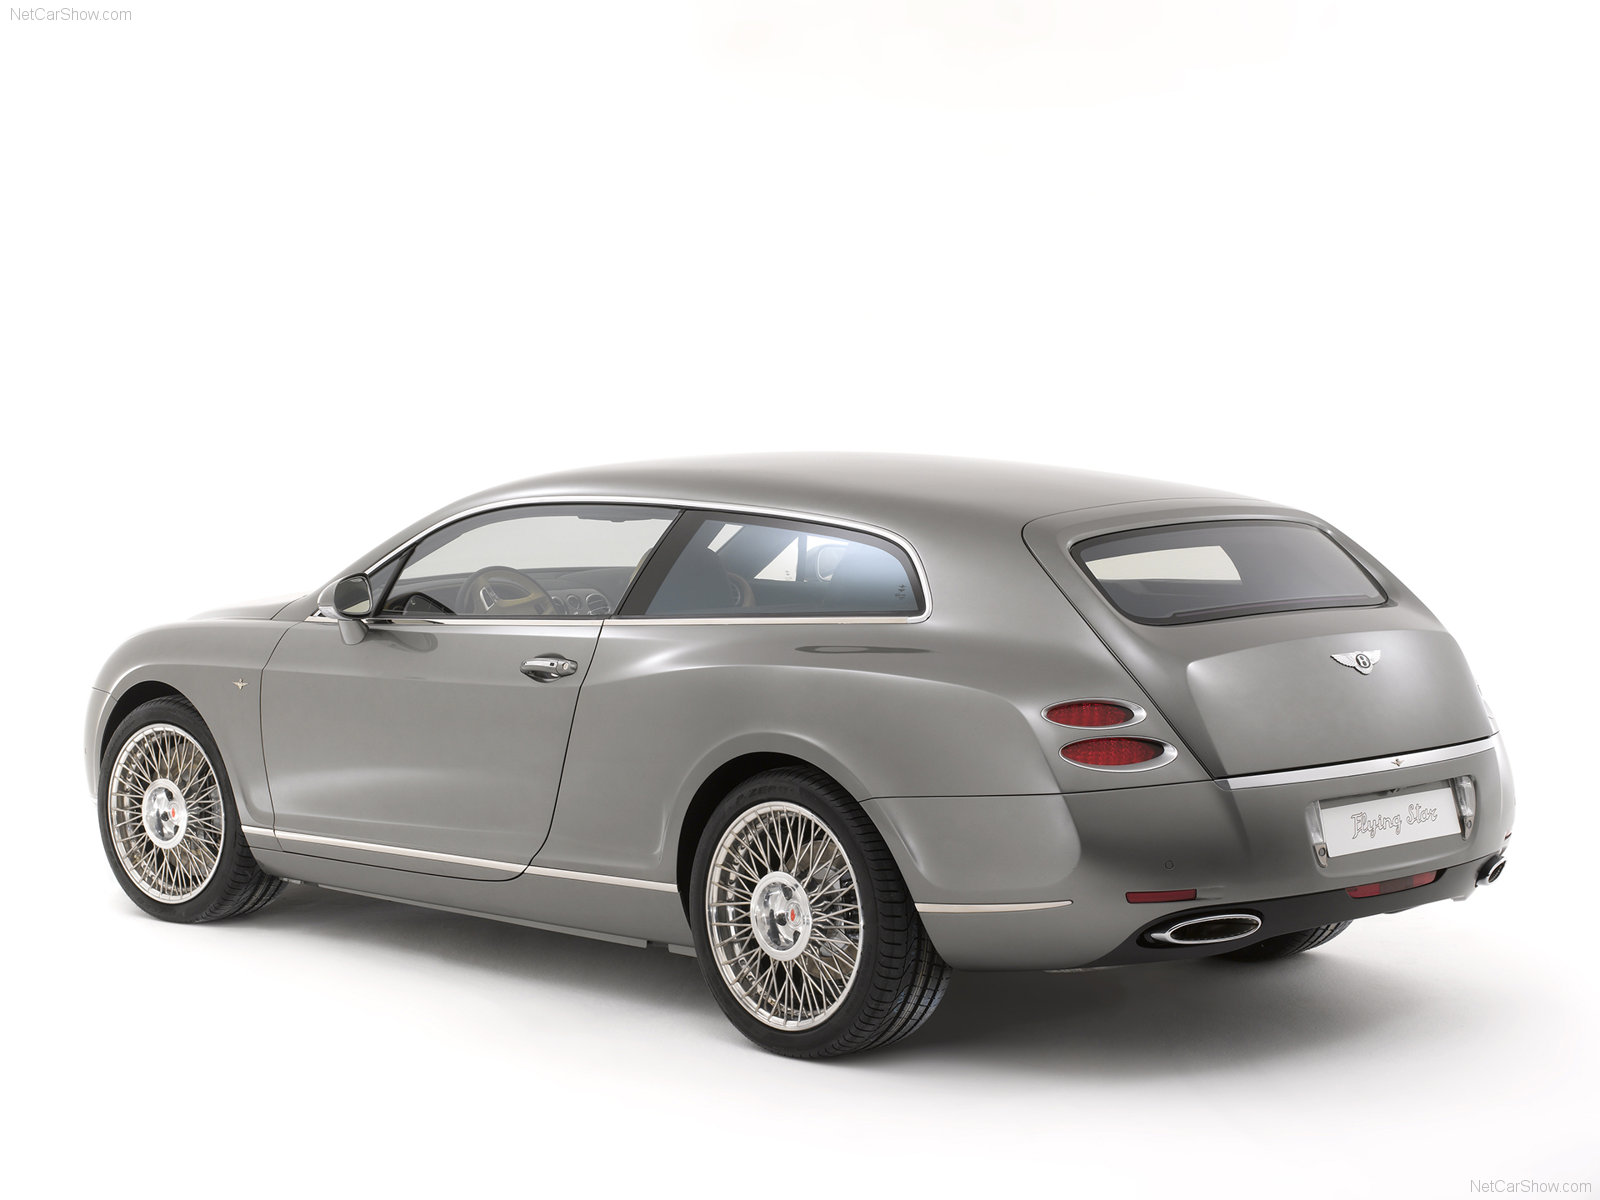 Bentley Continental Flying Star 2010 1600x1200 wallpaper 08 2010 Bentley Continental Flying Star